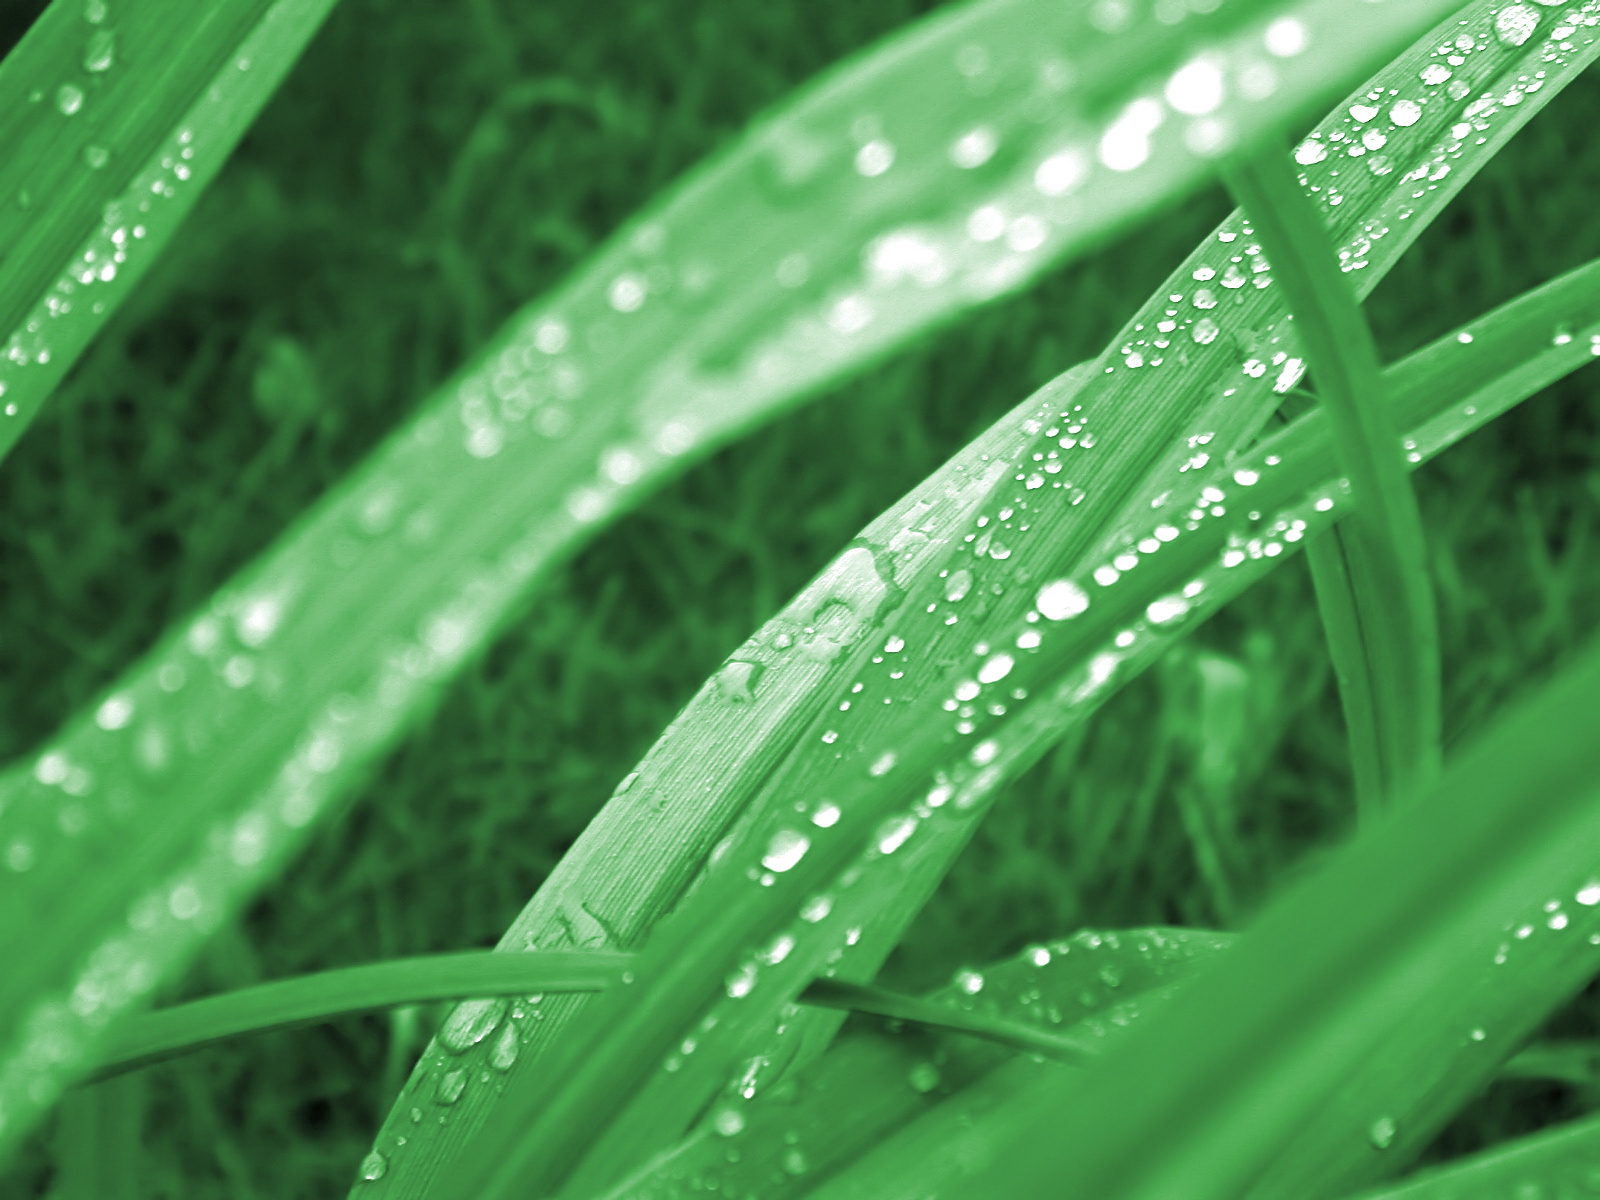 Green series of high-definition 14213